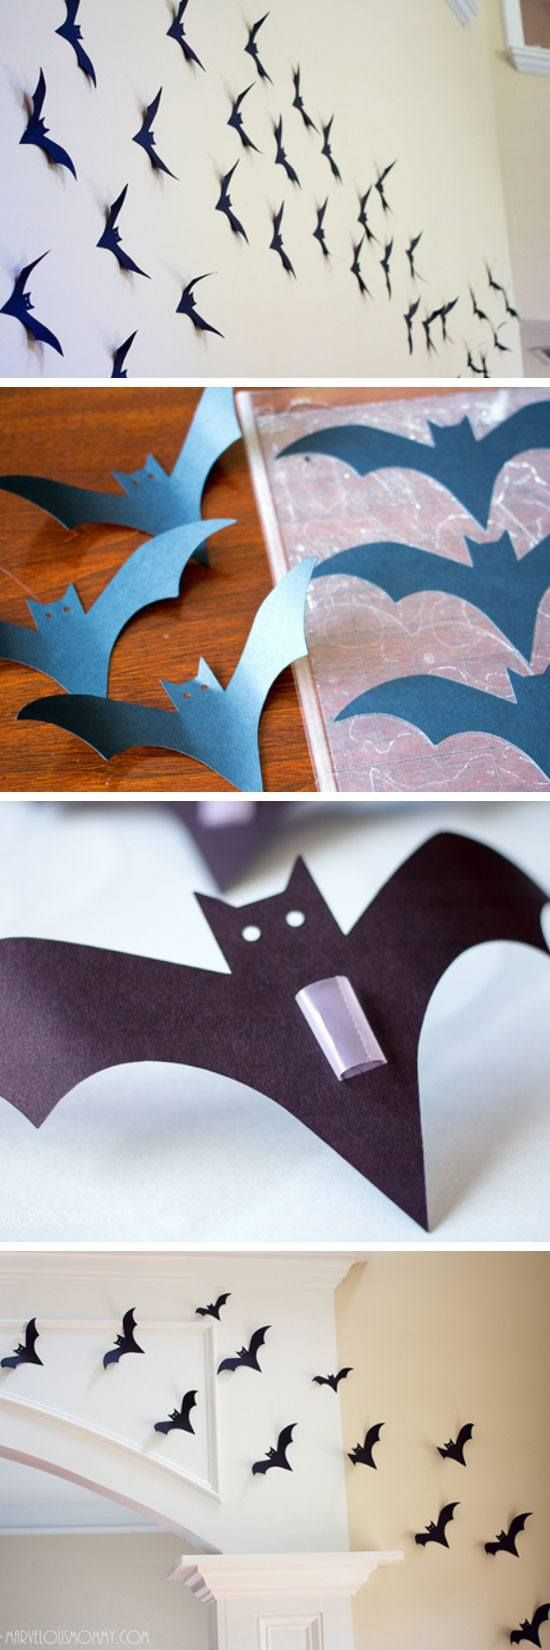 25 diy halloween decorating ideas for kids on a budget - Decoration For Halloween Ideas